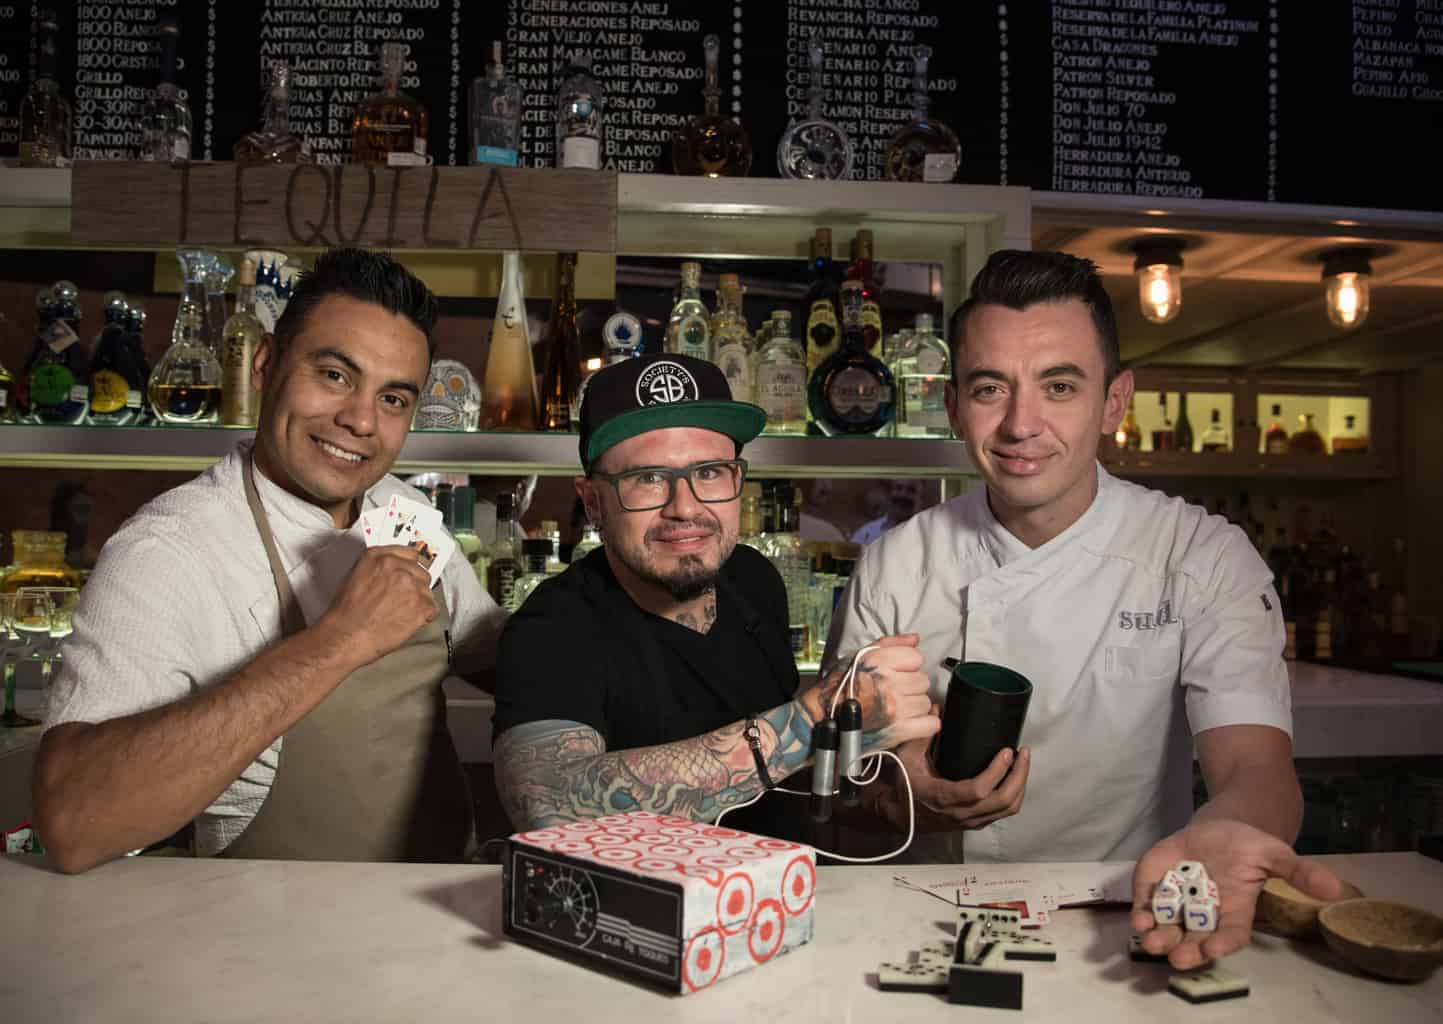 Tres grandes chefs intercambian sus men s botaneros en for Comedor jacinta polanco